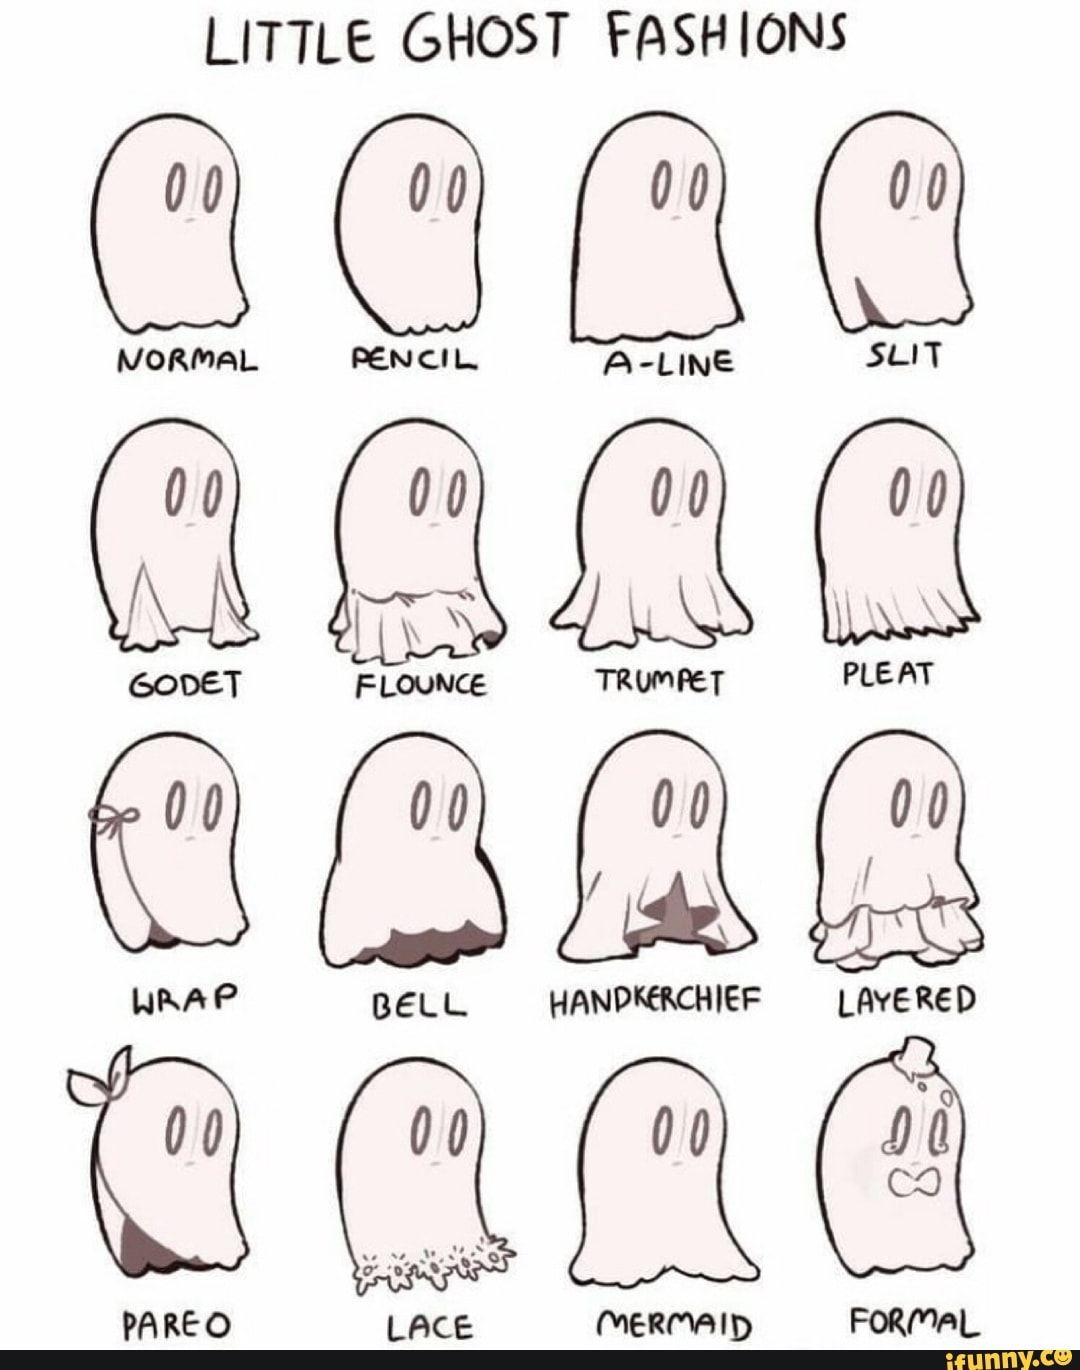 Little Ghost Fash Ions Ifunny Cute Drawings Drawing Tips Cute Art